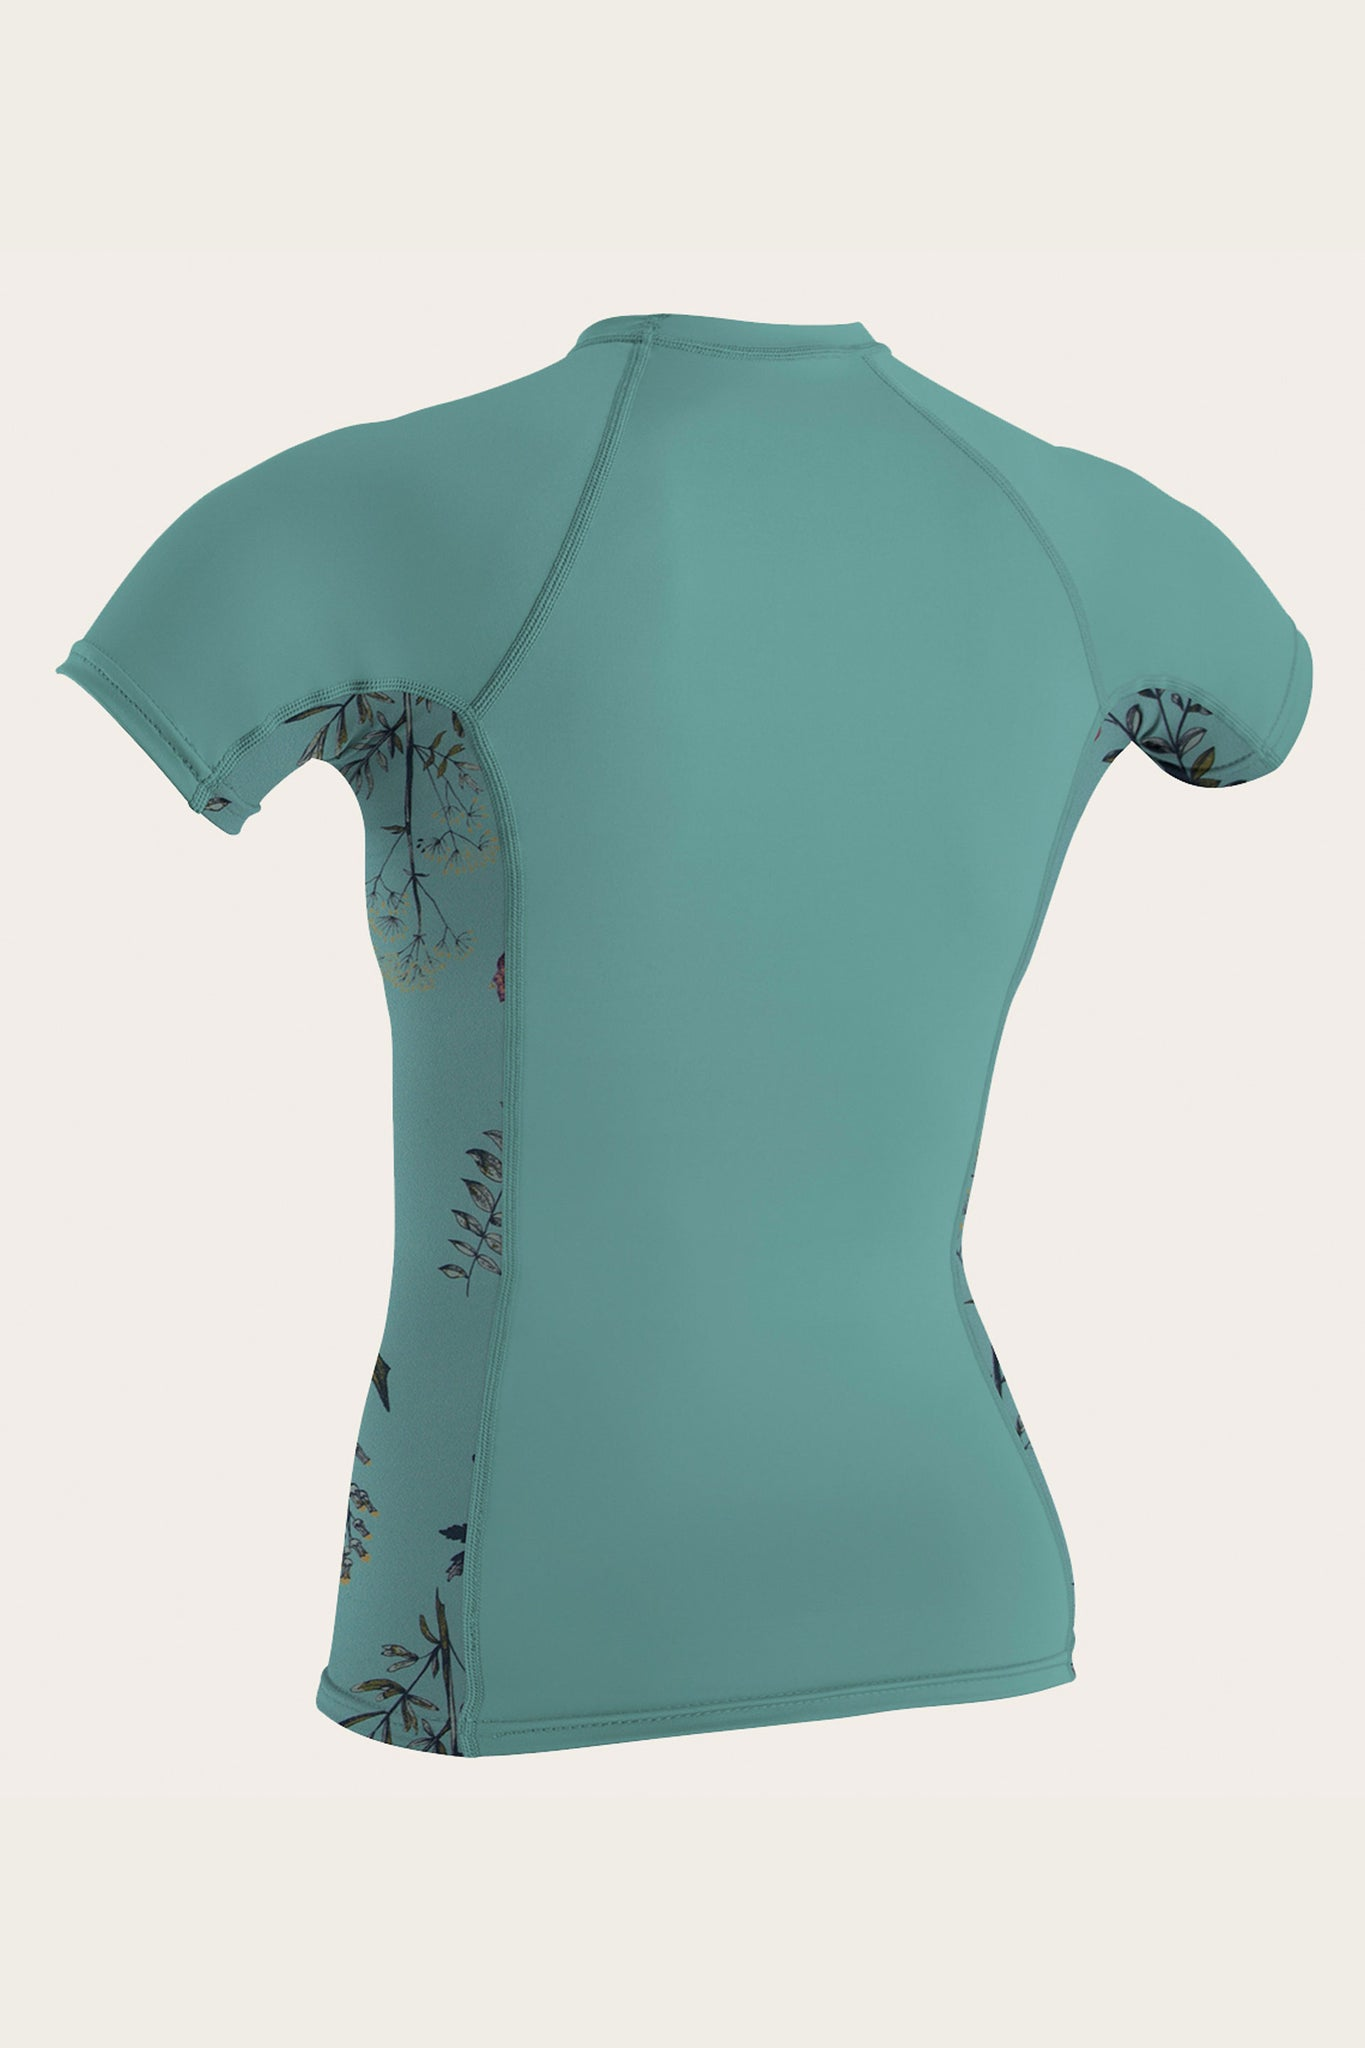 Womens Side Print S/S Rash Guard - Aquahaze/Piperflrl | O'Neill